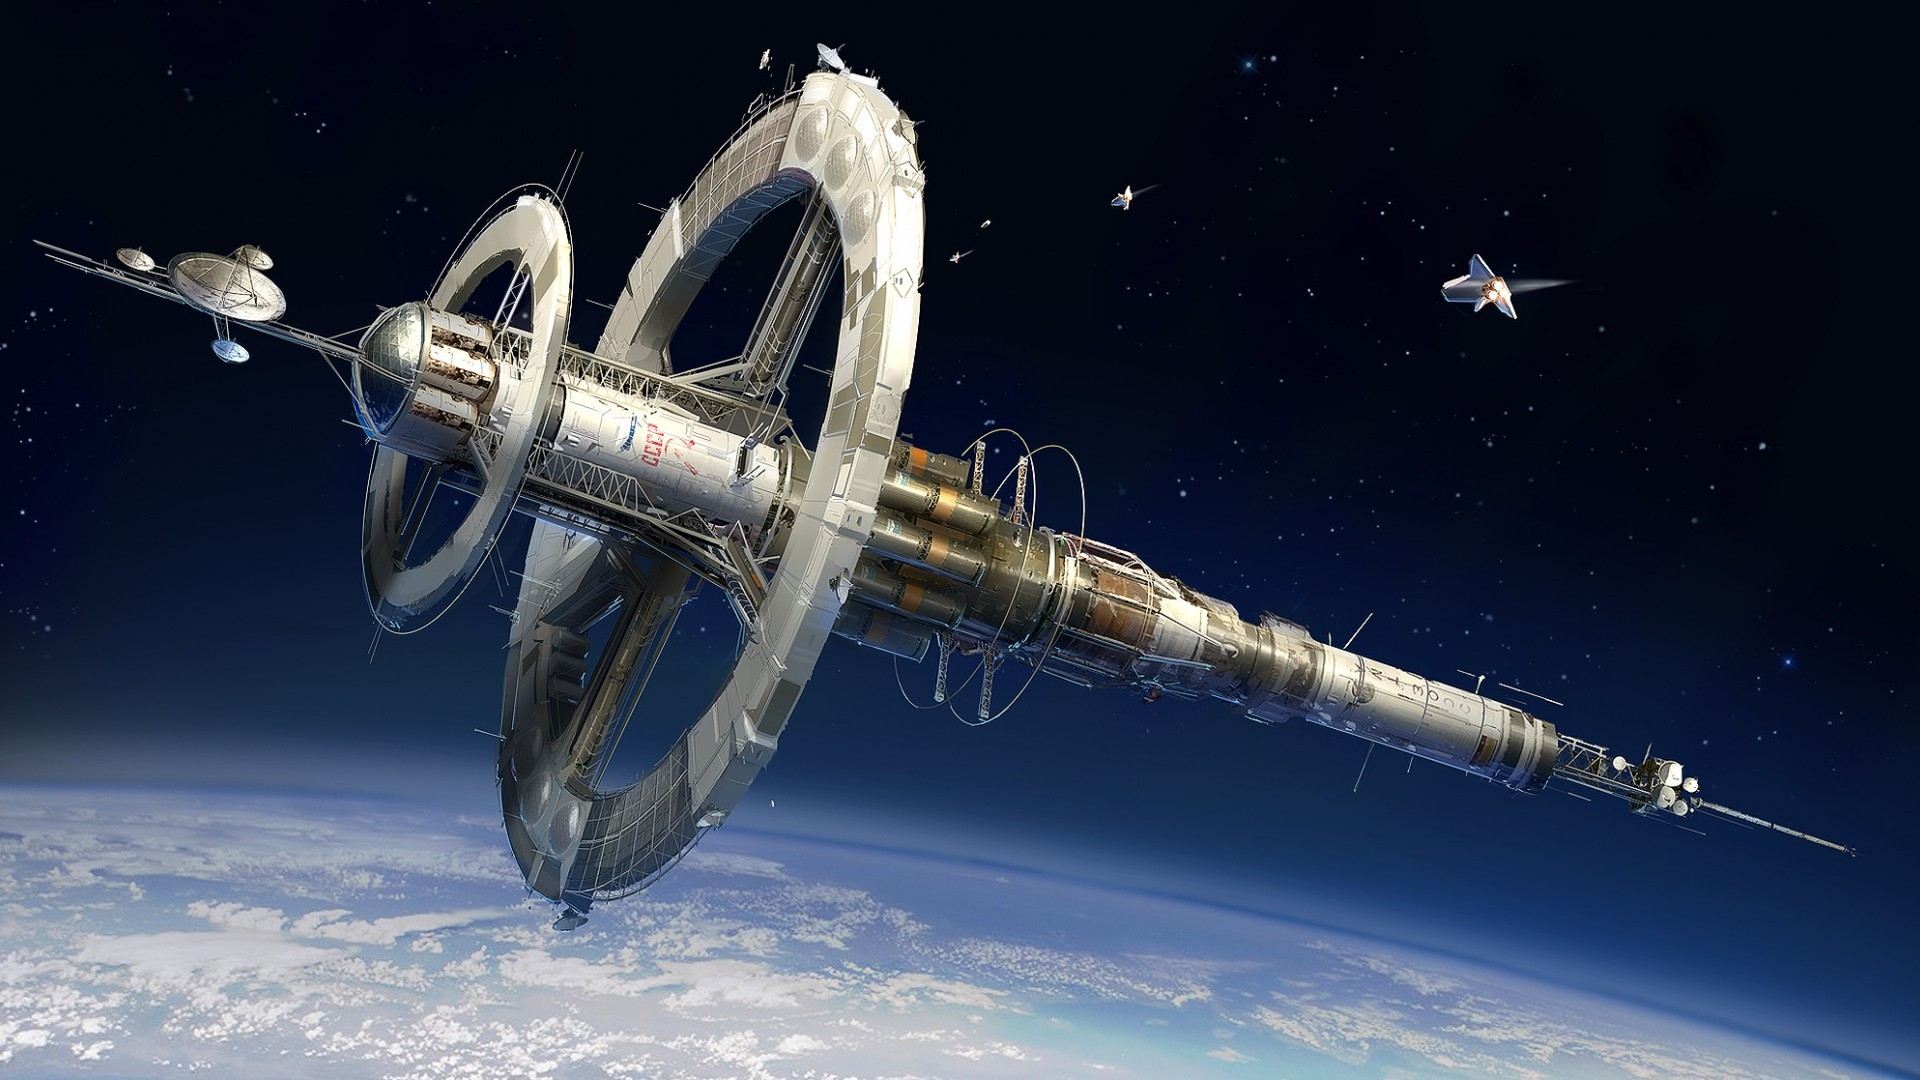 Space, Station, Earth, Planet, Nasa, Shuttle, Cccp, - Space Station Design Concepts , HD Wallpaper & Backgrounds